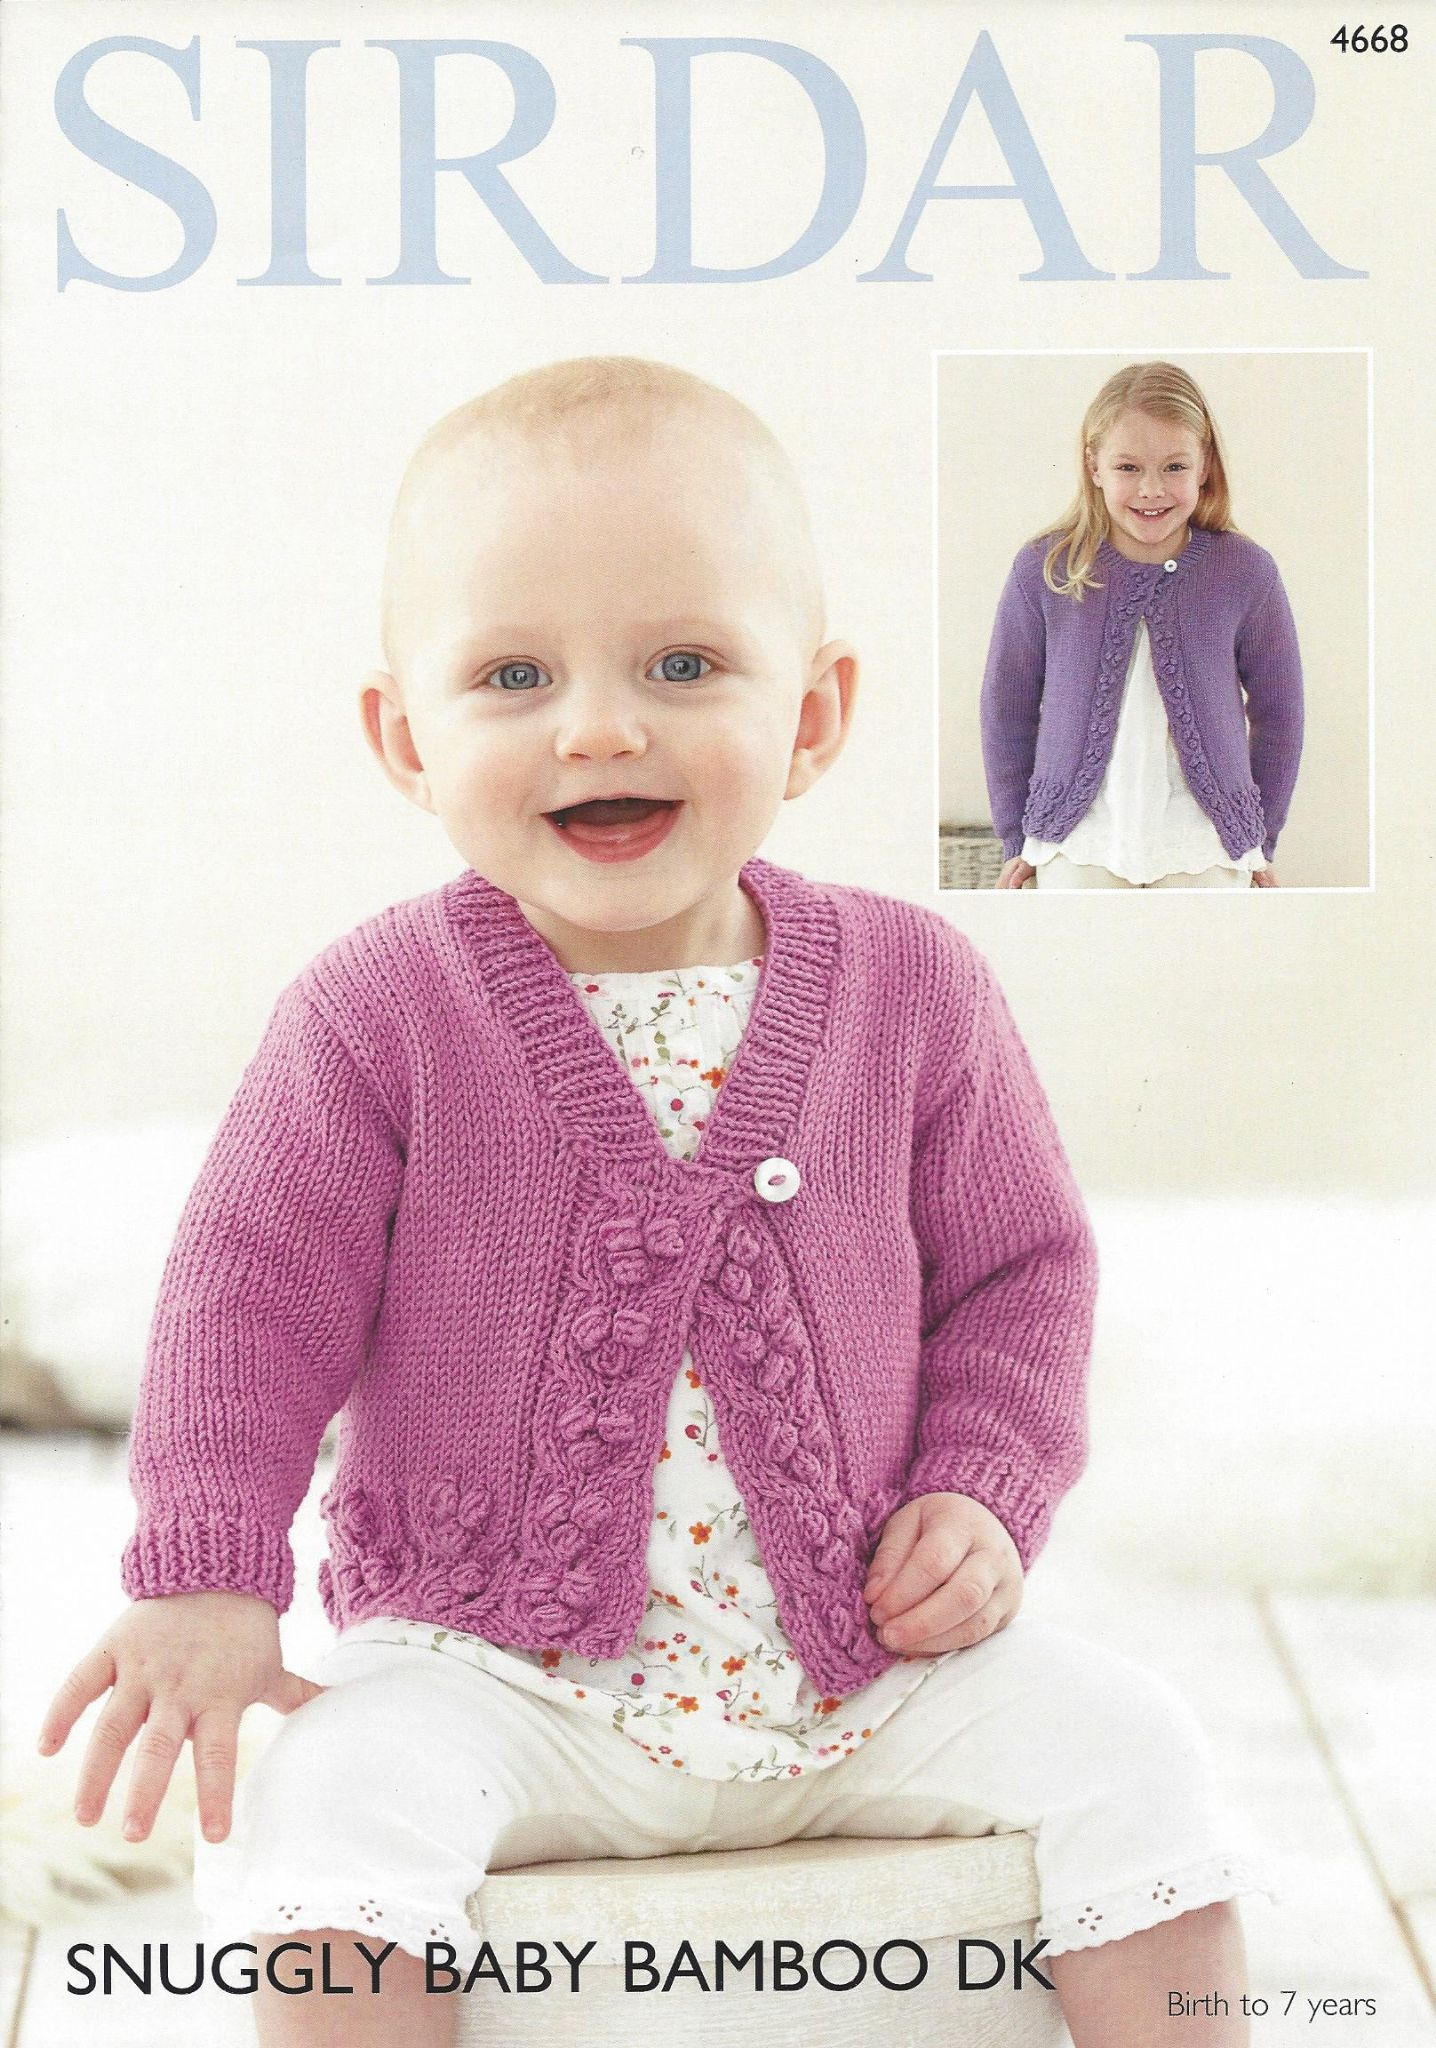 Sirdar Snuggly Baby Bamboo Dk 4668 Cardigans Knitting